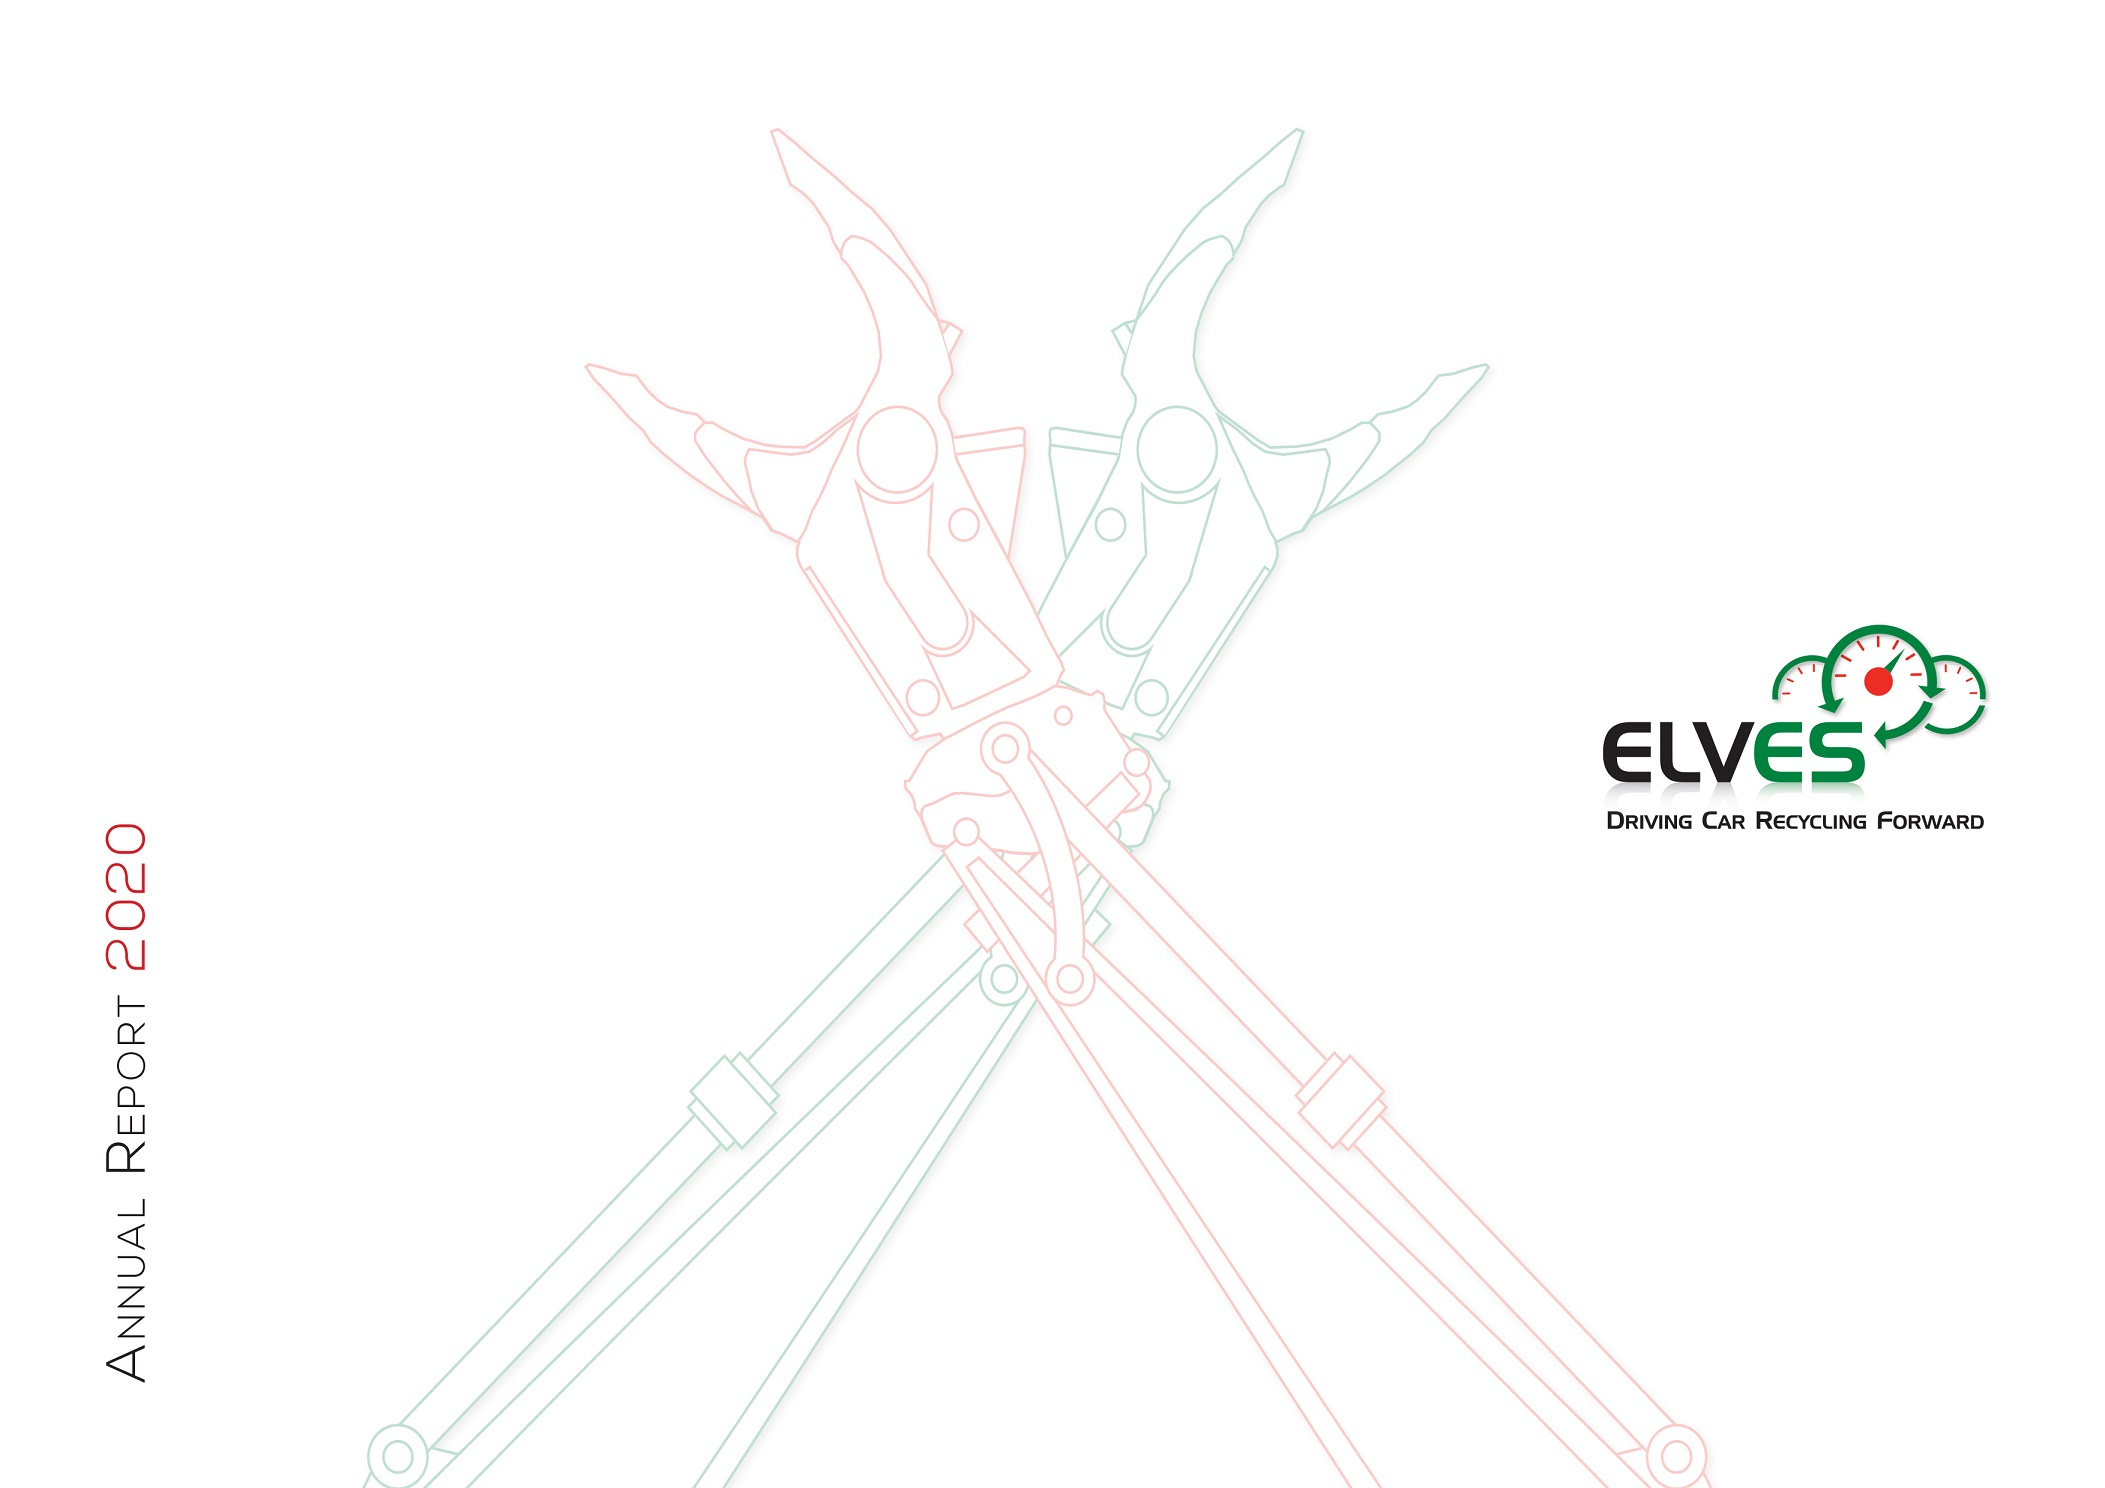 ELVES has published its Annual Report for 2020